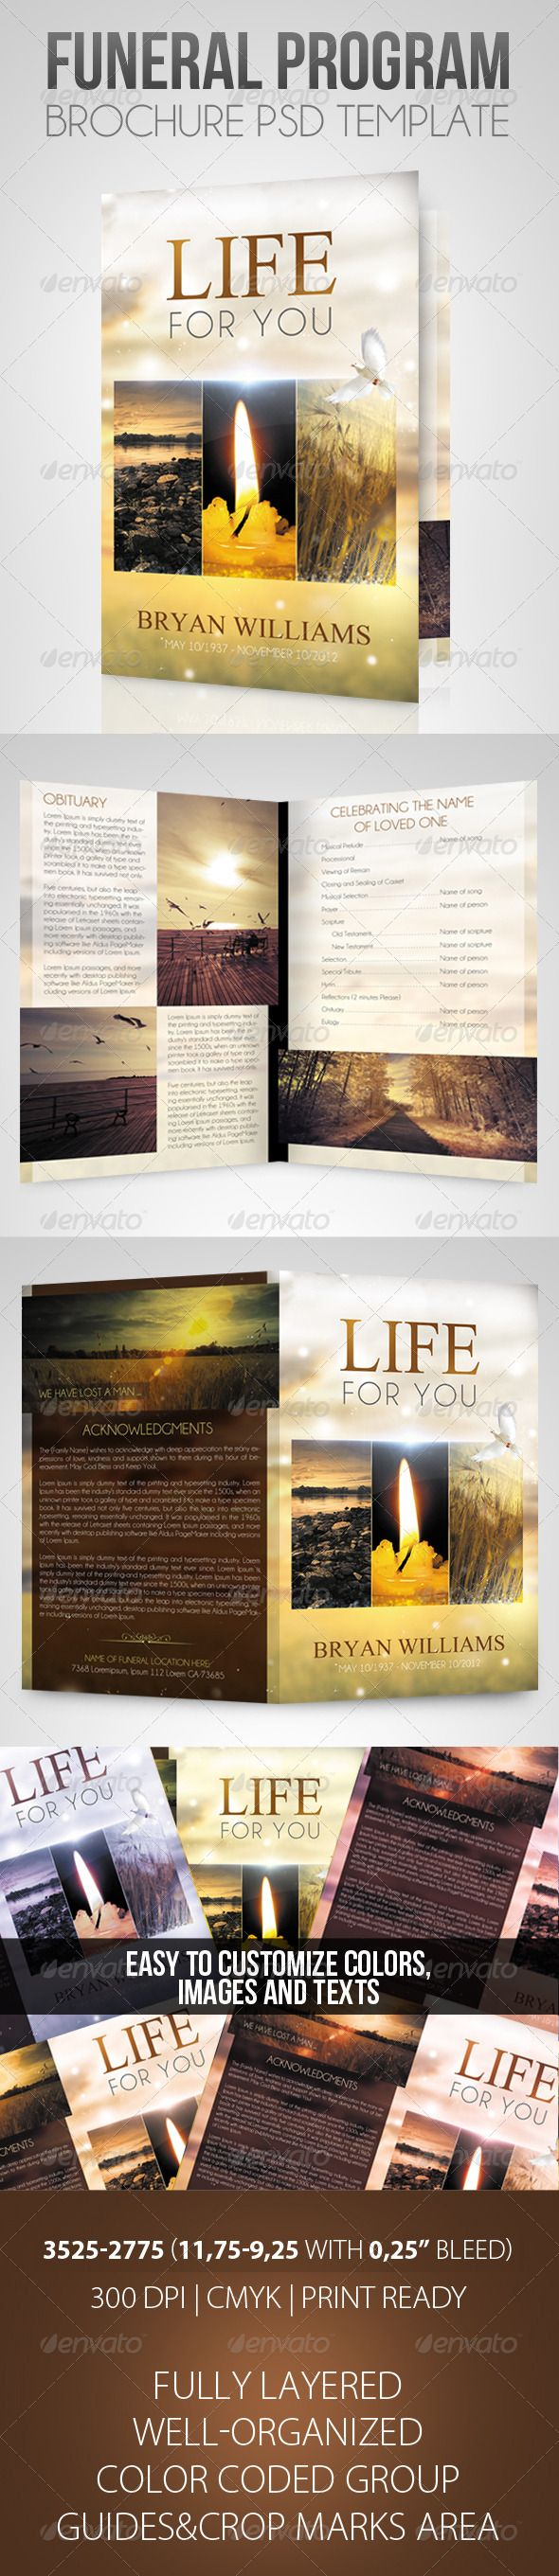 Life For You  Funeral Program Brochure Template  Brochure